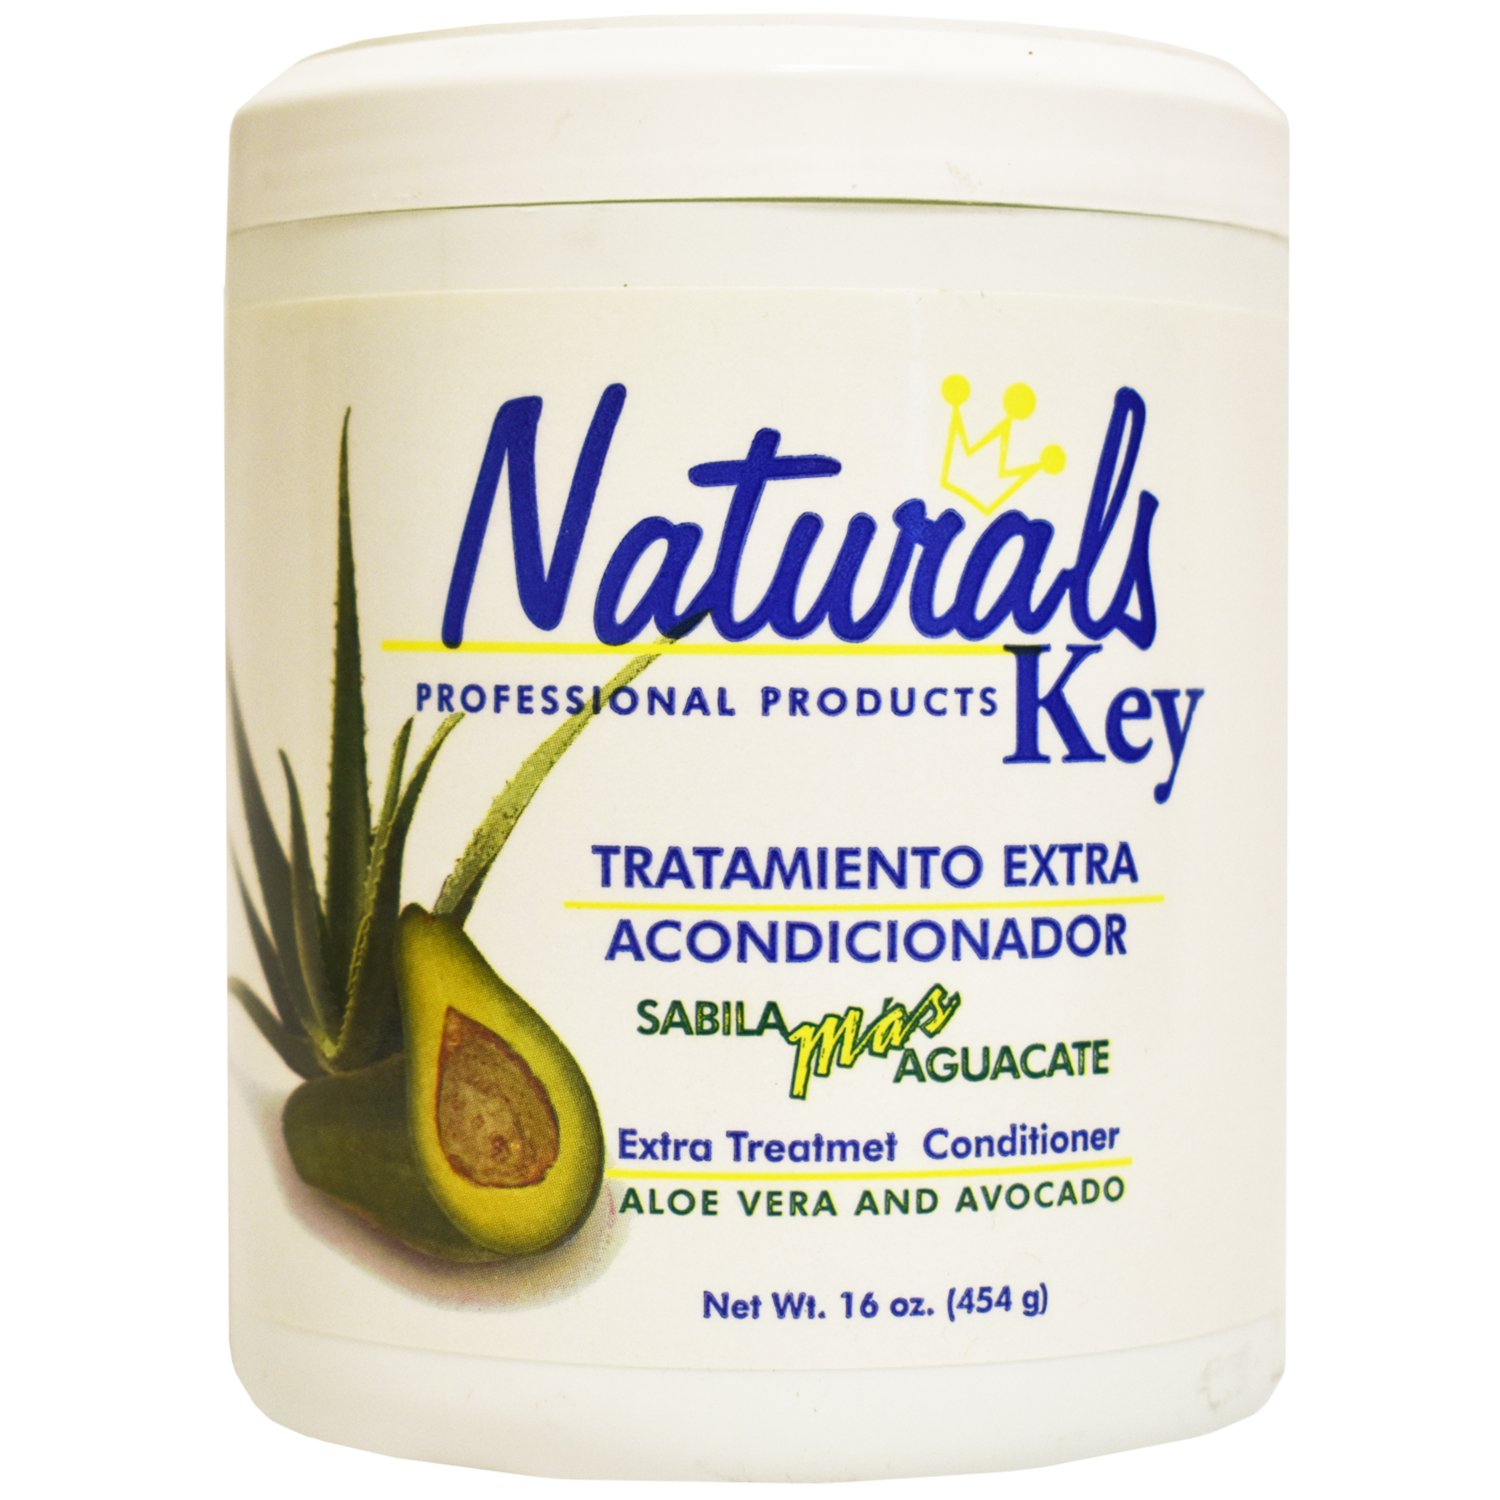 Dominican Hair Product Naturals Key Aloe Vera and Avocado Treatment Conditioner 16oz